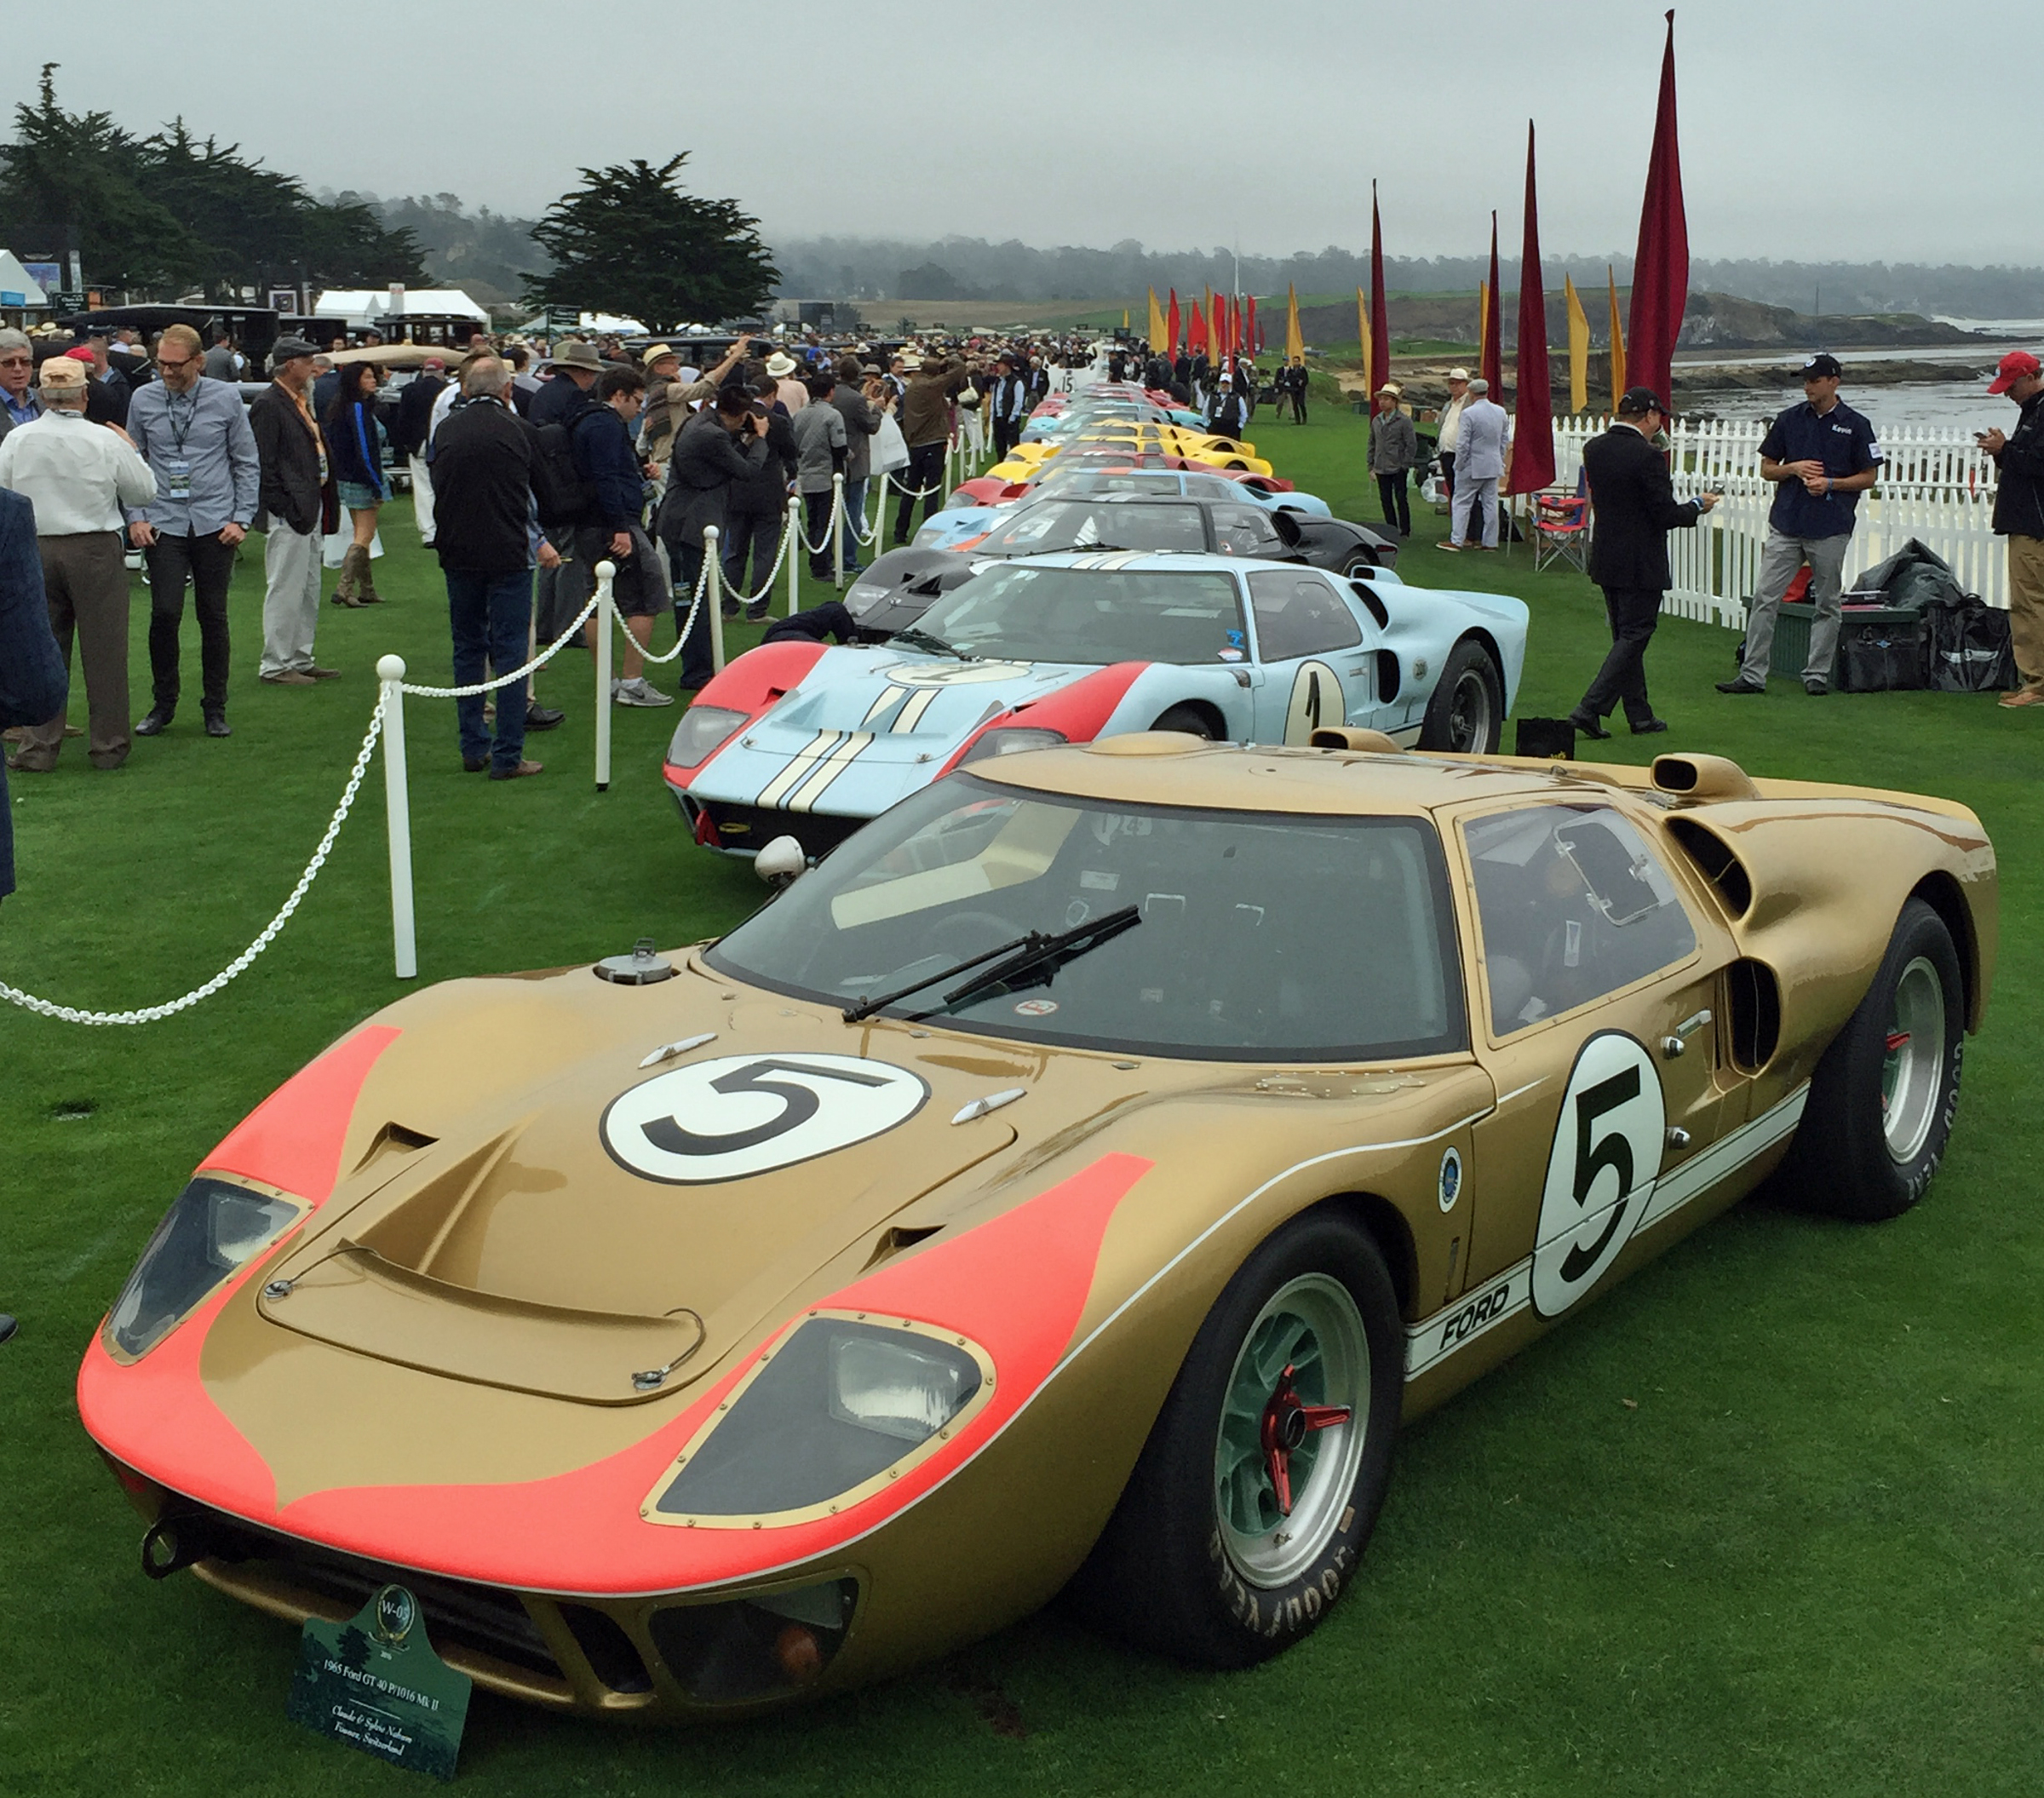 ford gt40s flood the 2016 pebble beach concours karl on. Black Bedroom Furniture Sets. Home Design Ideas